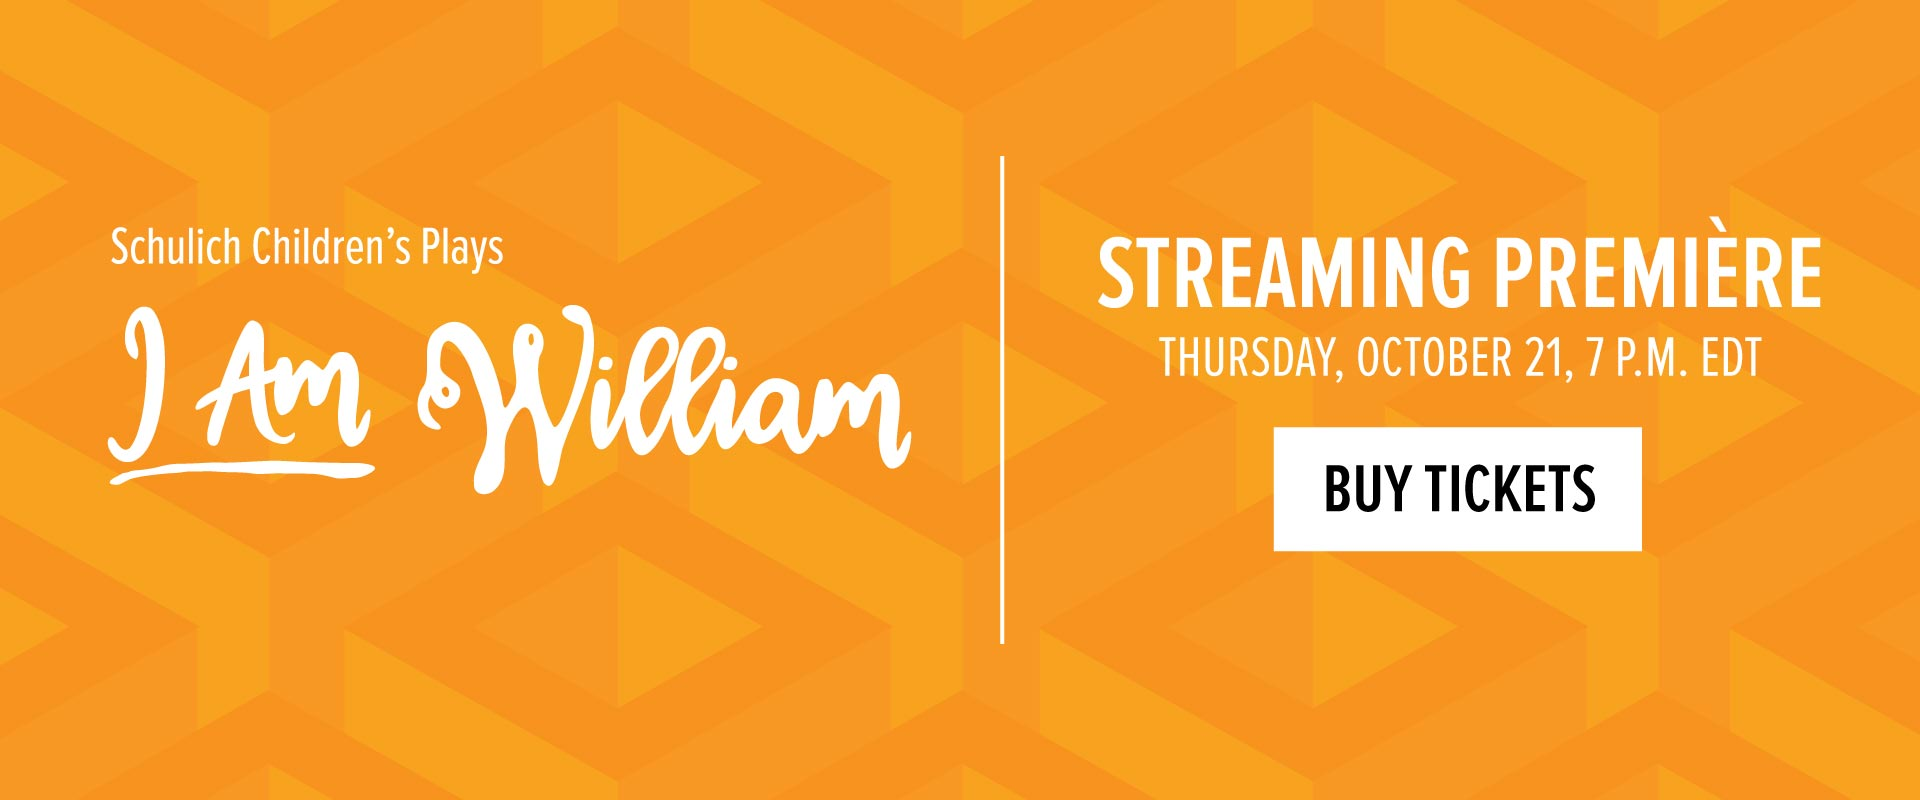 Streaming Premiere for I Am William, Thursday October 21 at 7pm Buy Tickets